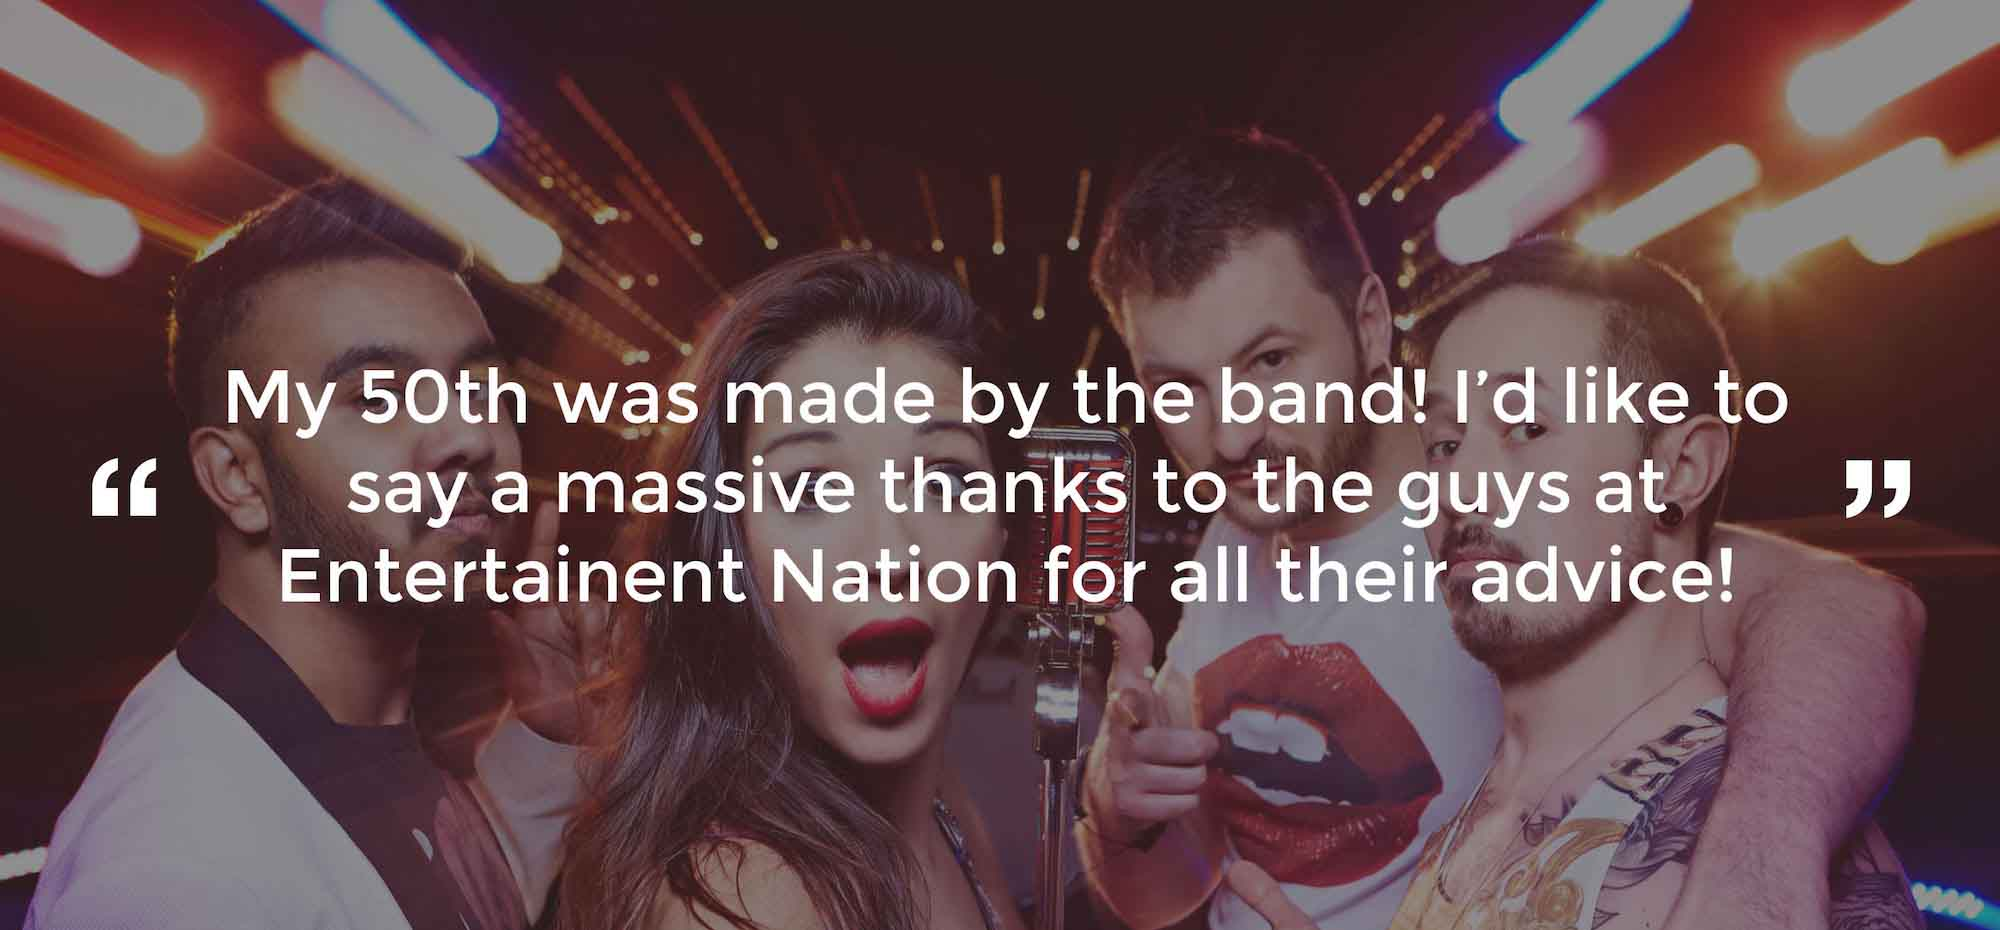 Client Review of a Party Band Dorset